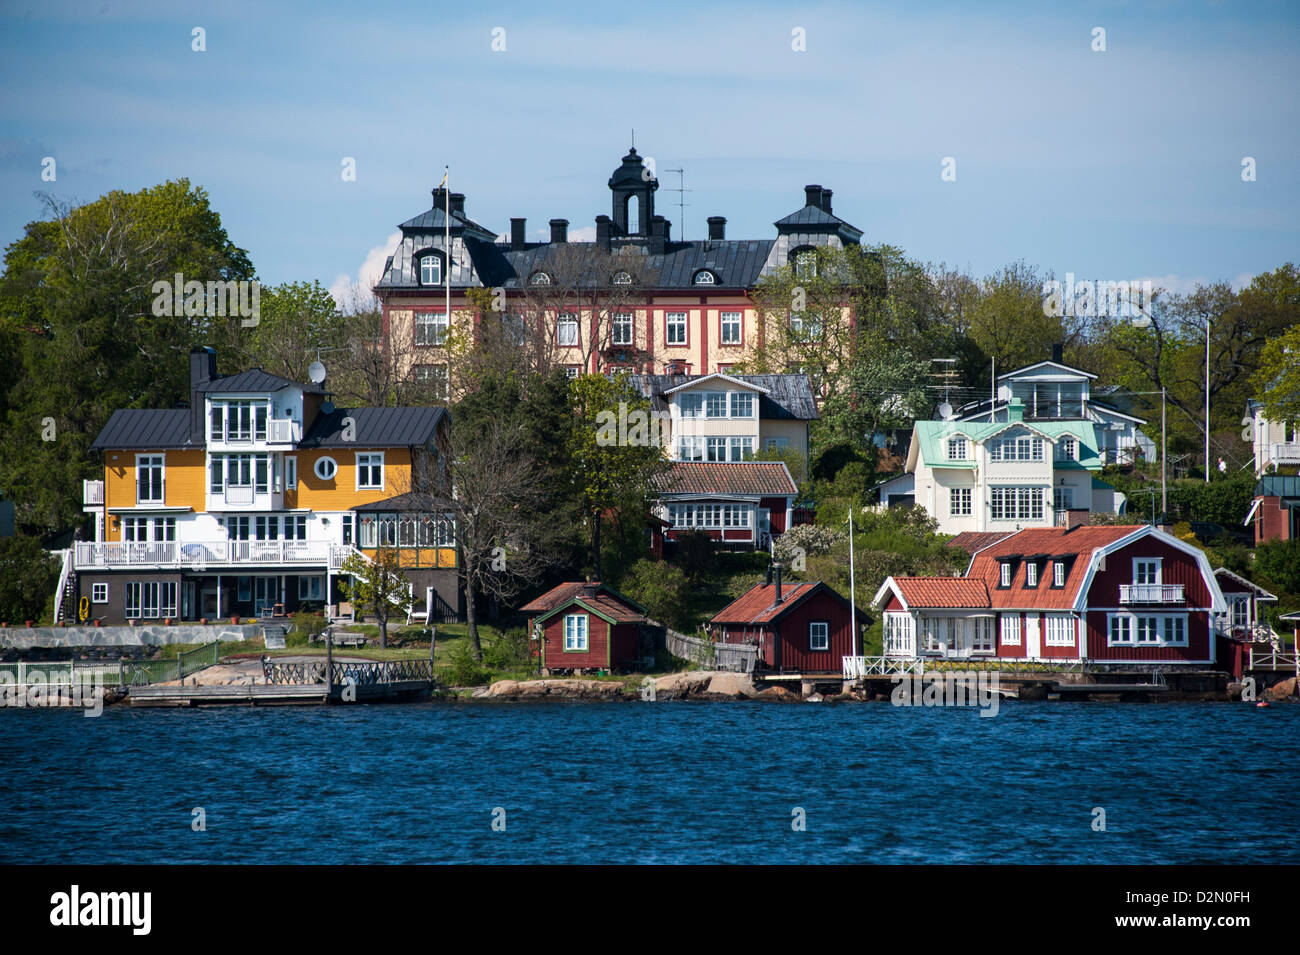 Built-up area with family houses around an old military installation on the island of Rindö in Vaxholm Stockholm - Stock Image